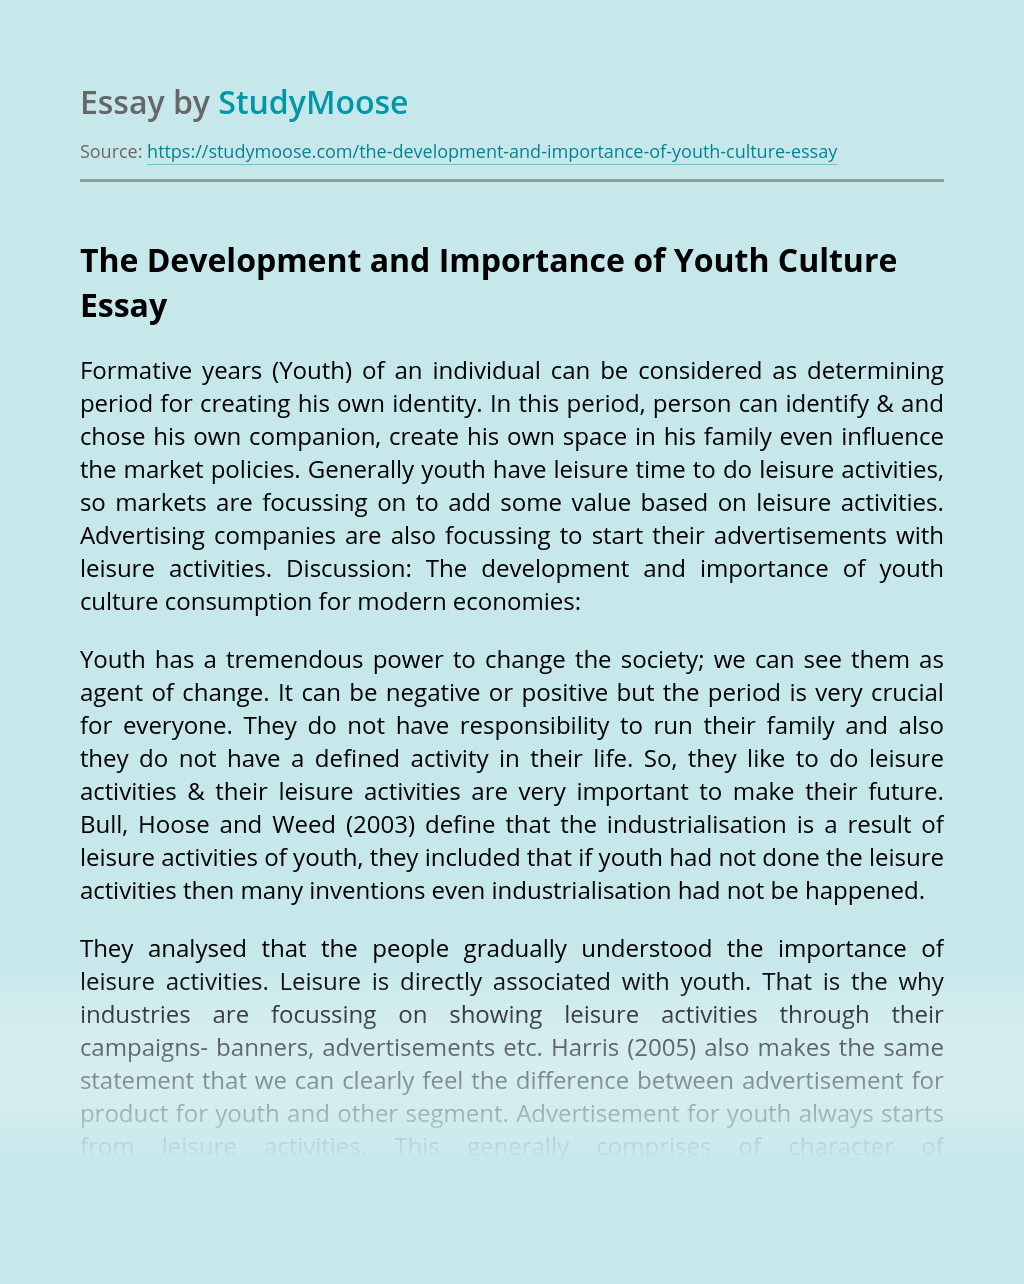 The Development and Importance of Youth Culture